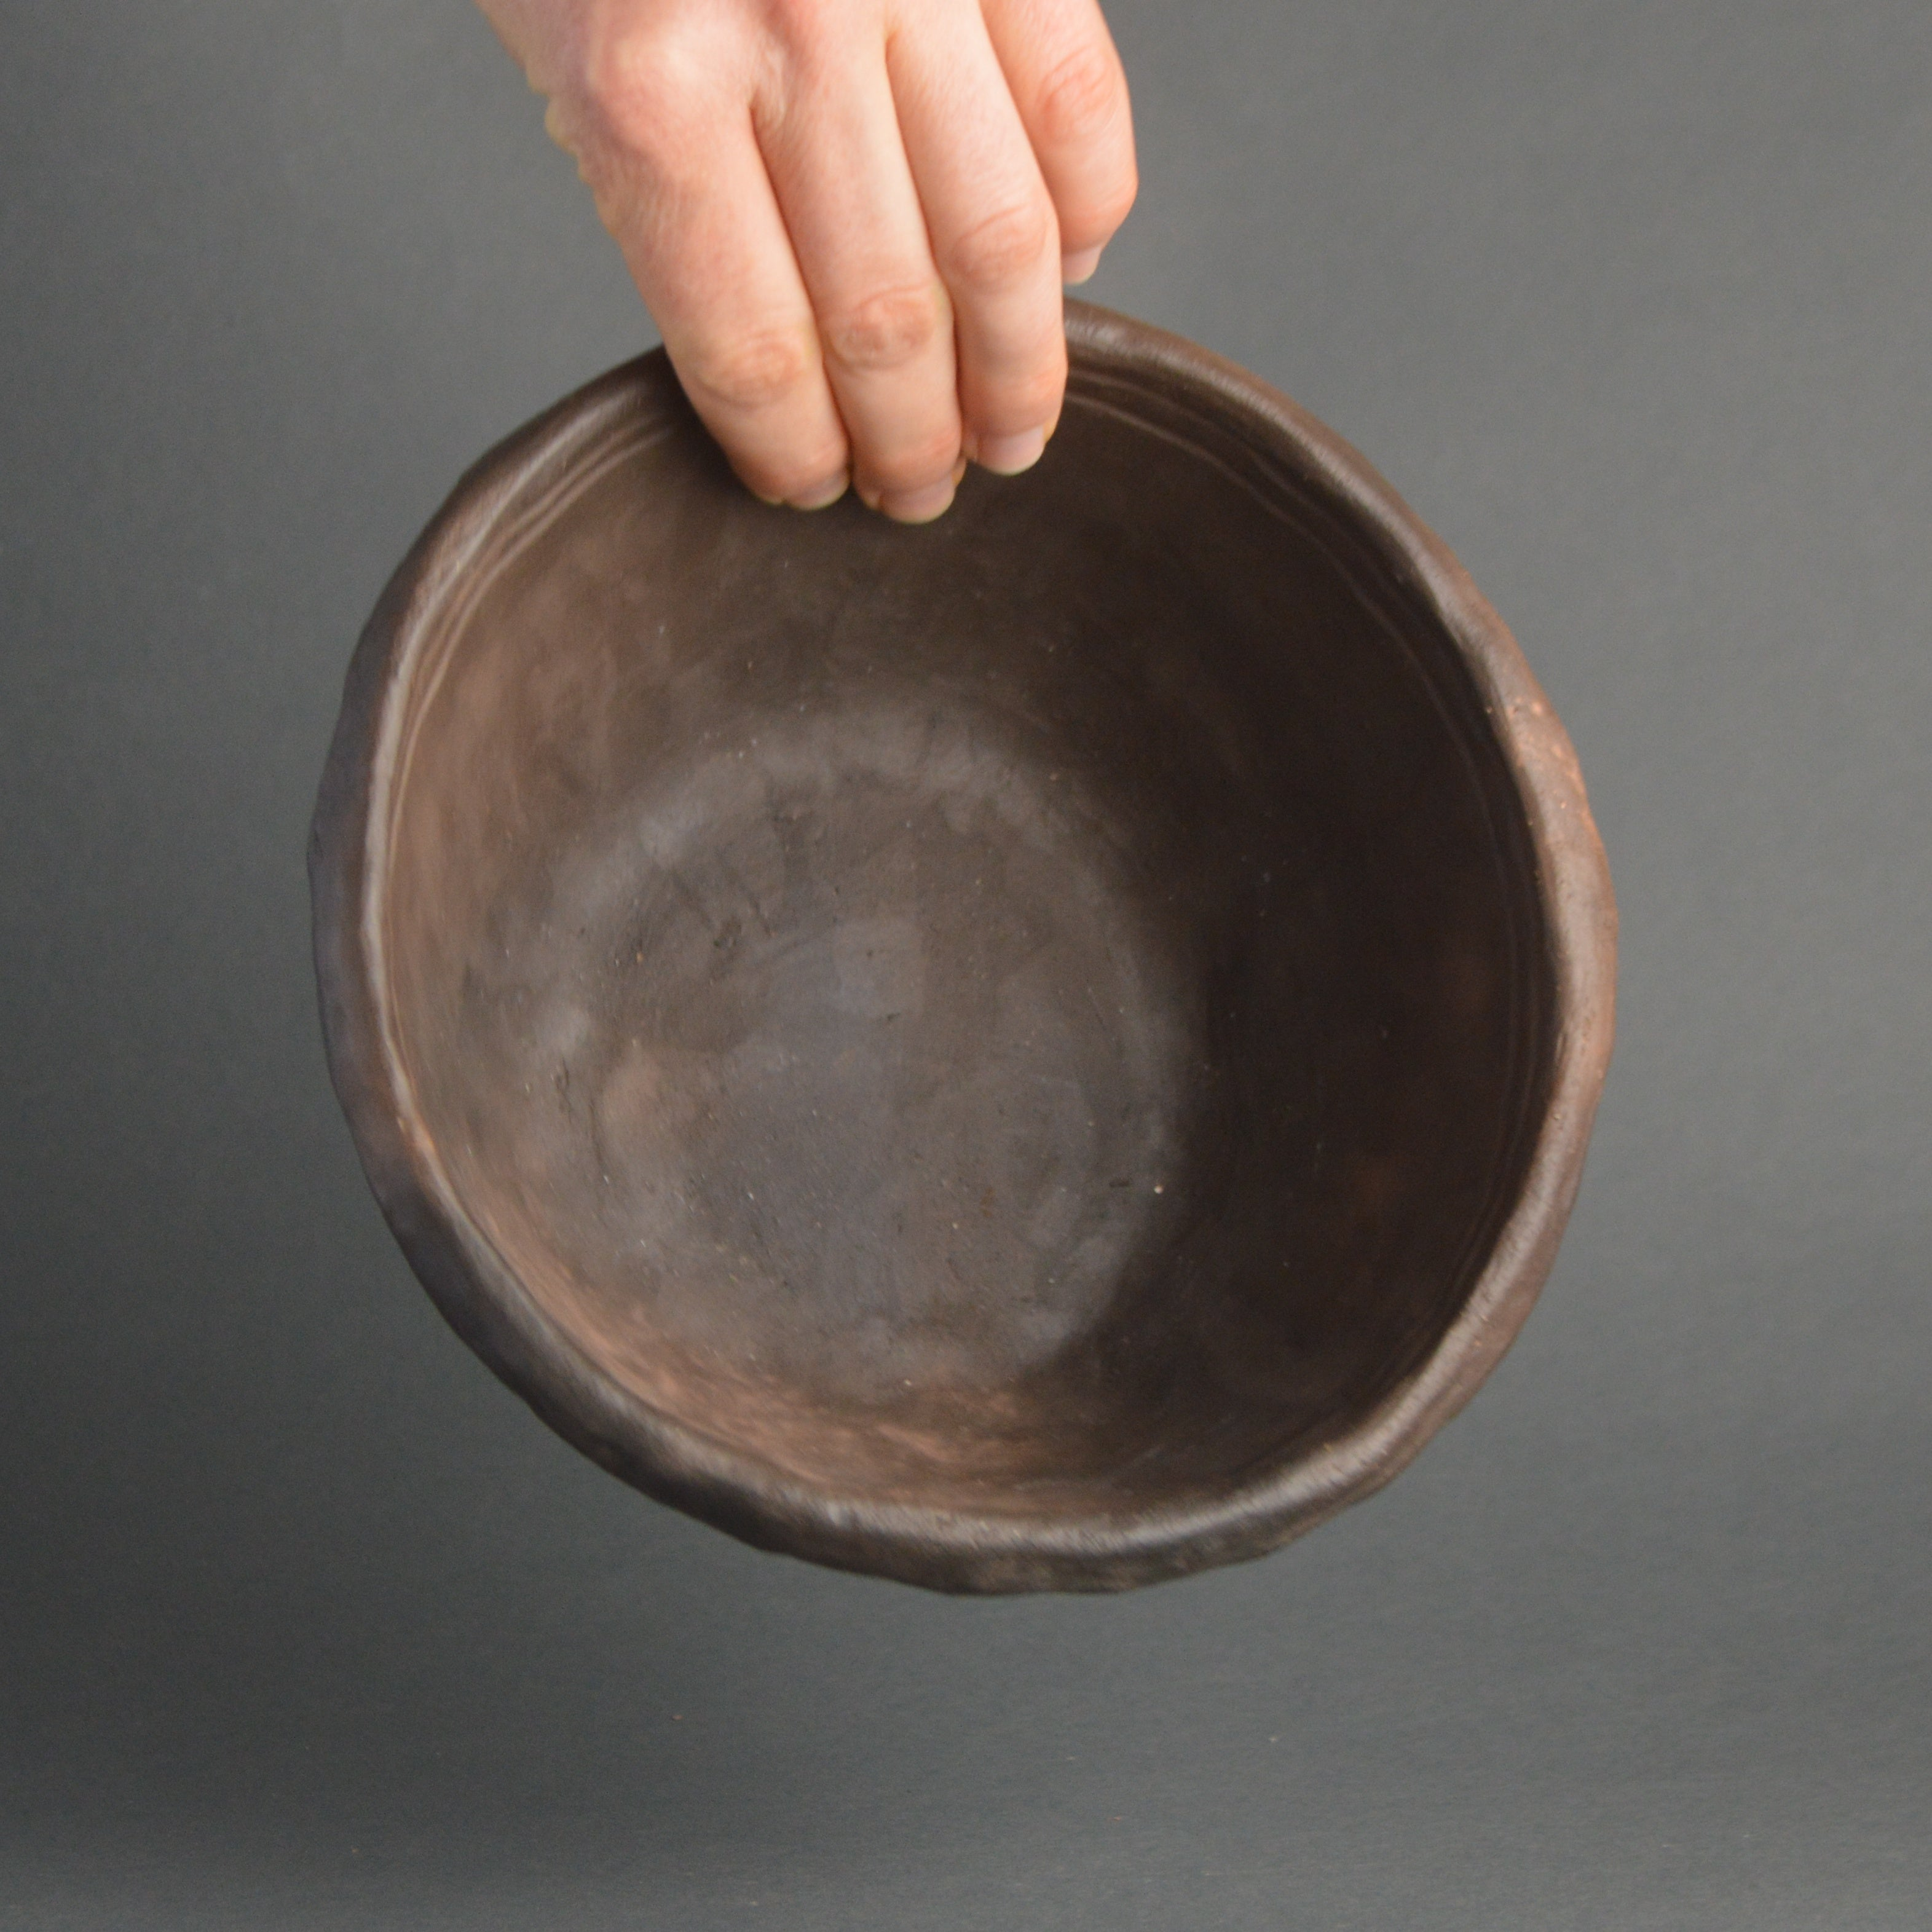 Boyne Valley Bowl, Grooved Ware